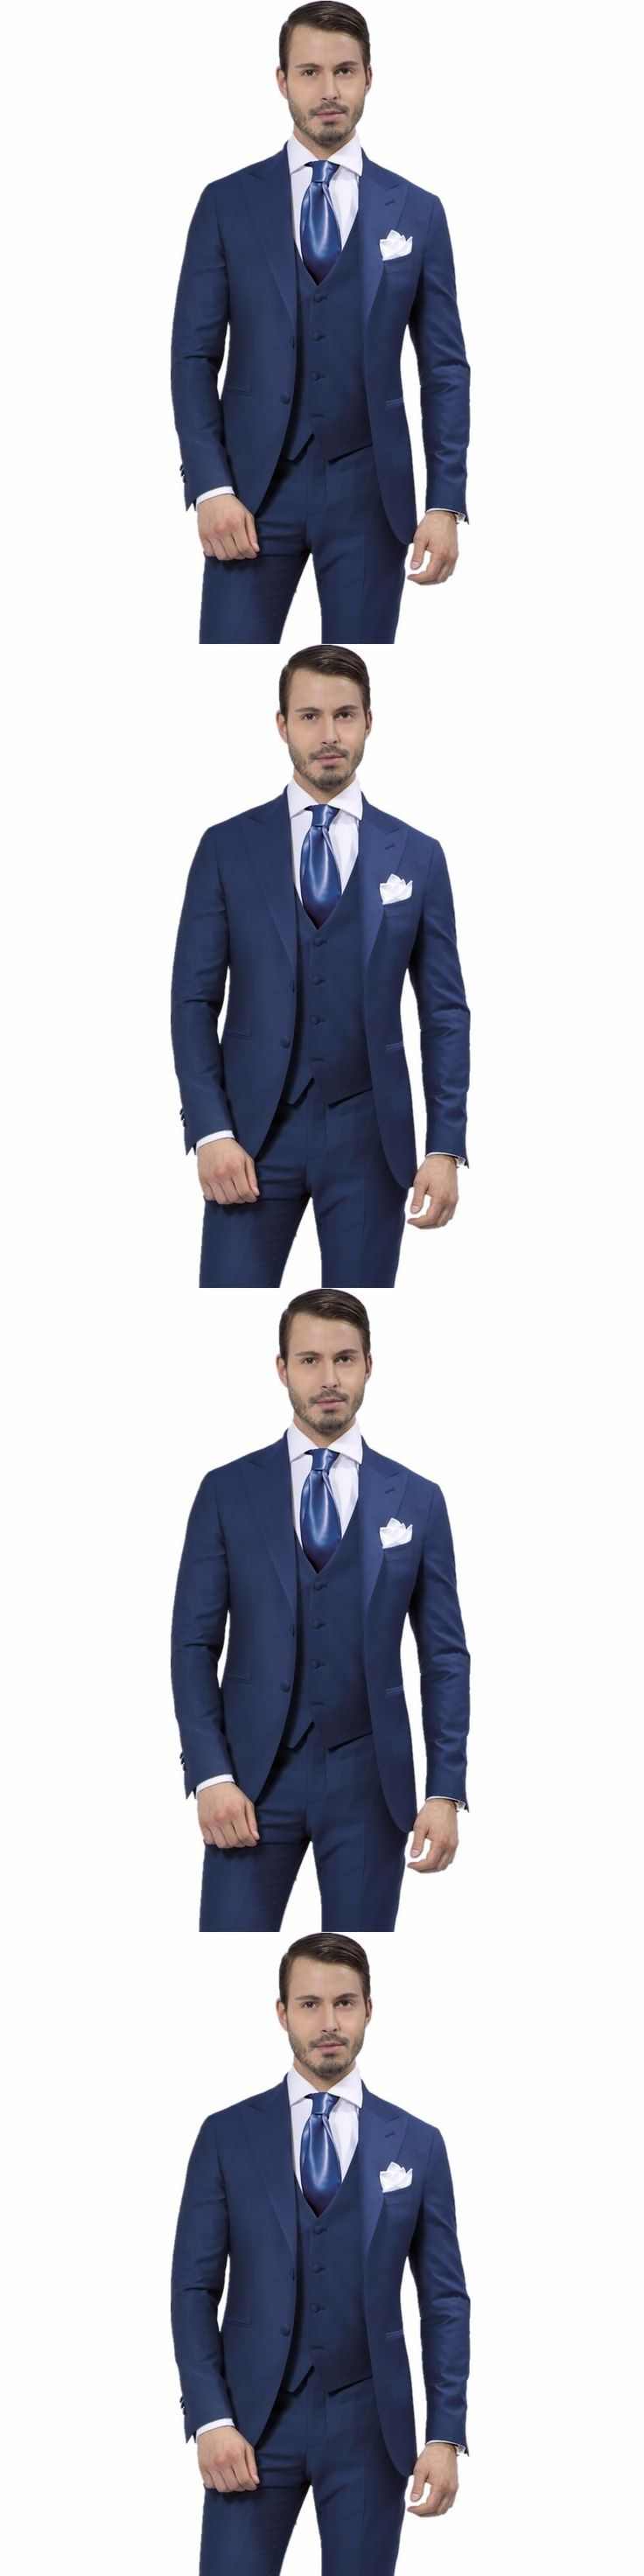 3Pieces Mens Suits Fashion Design Navy Blue Wedding Groom Tuxedos Slim Best man Party Dress Morning Style(Jacket+Pants+Vest+Tie) #menssuitsnavy